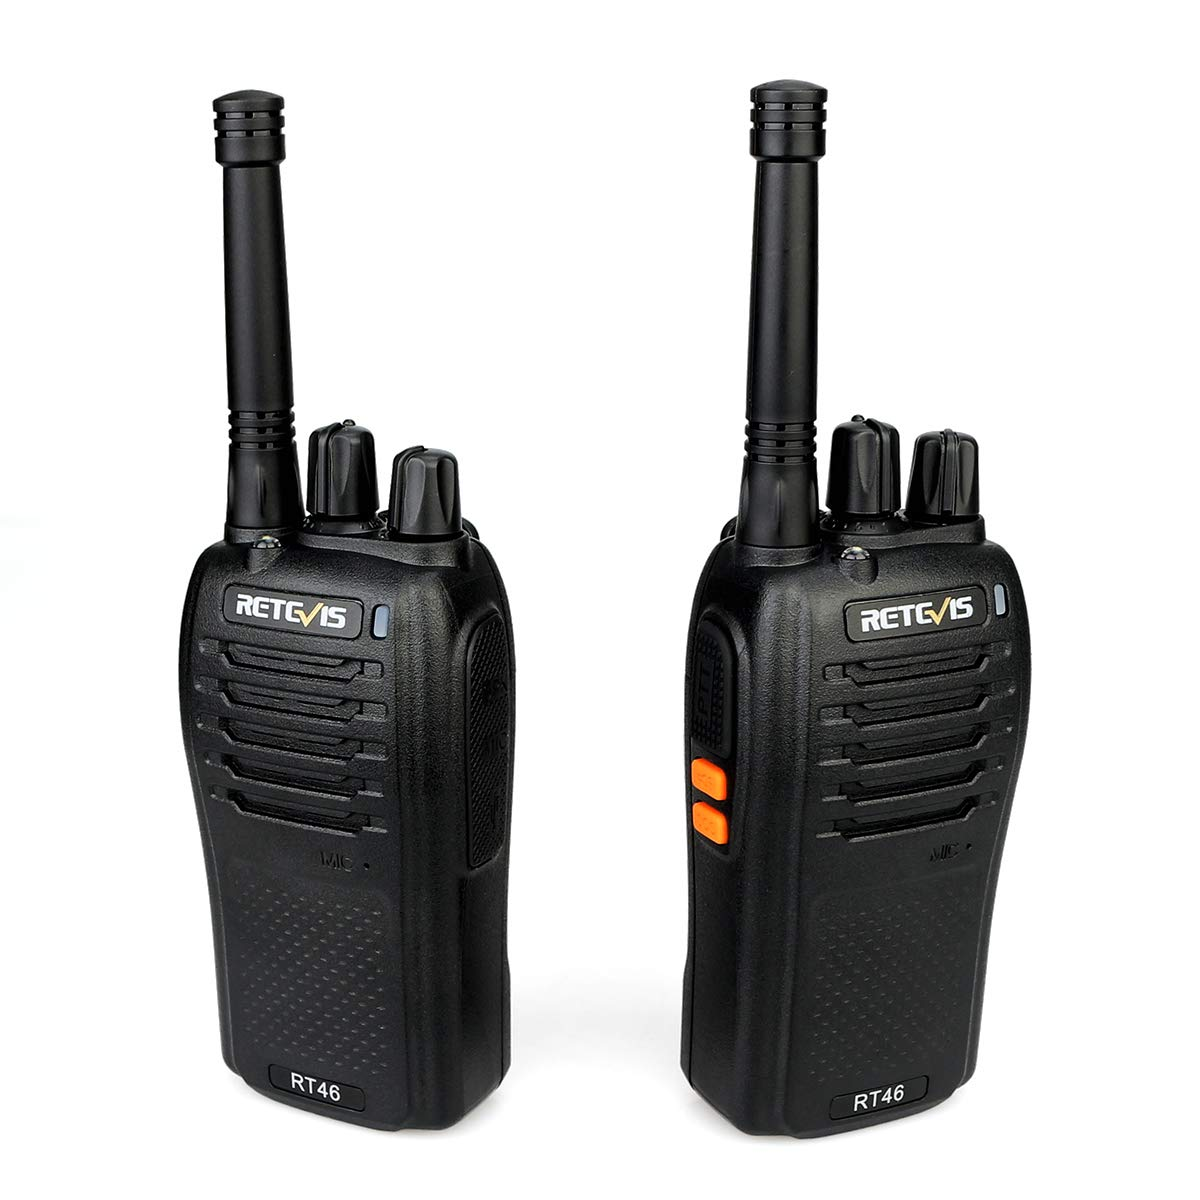 A Pair Retevis Rt46 Walkie Talkie 2w Portable Two Way Radio Transceiver Vox Micro-usb Charging Support Li-ion Battery or Aa